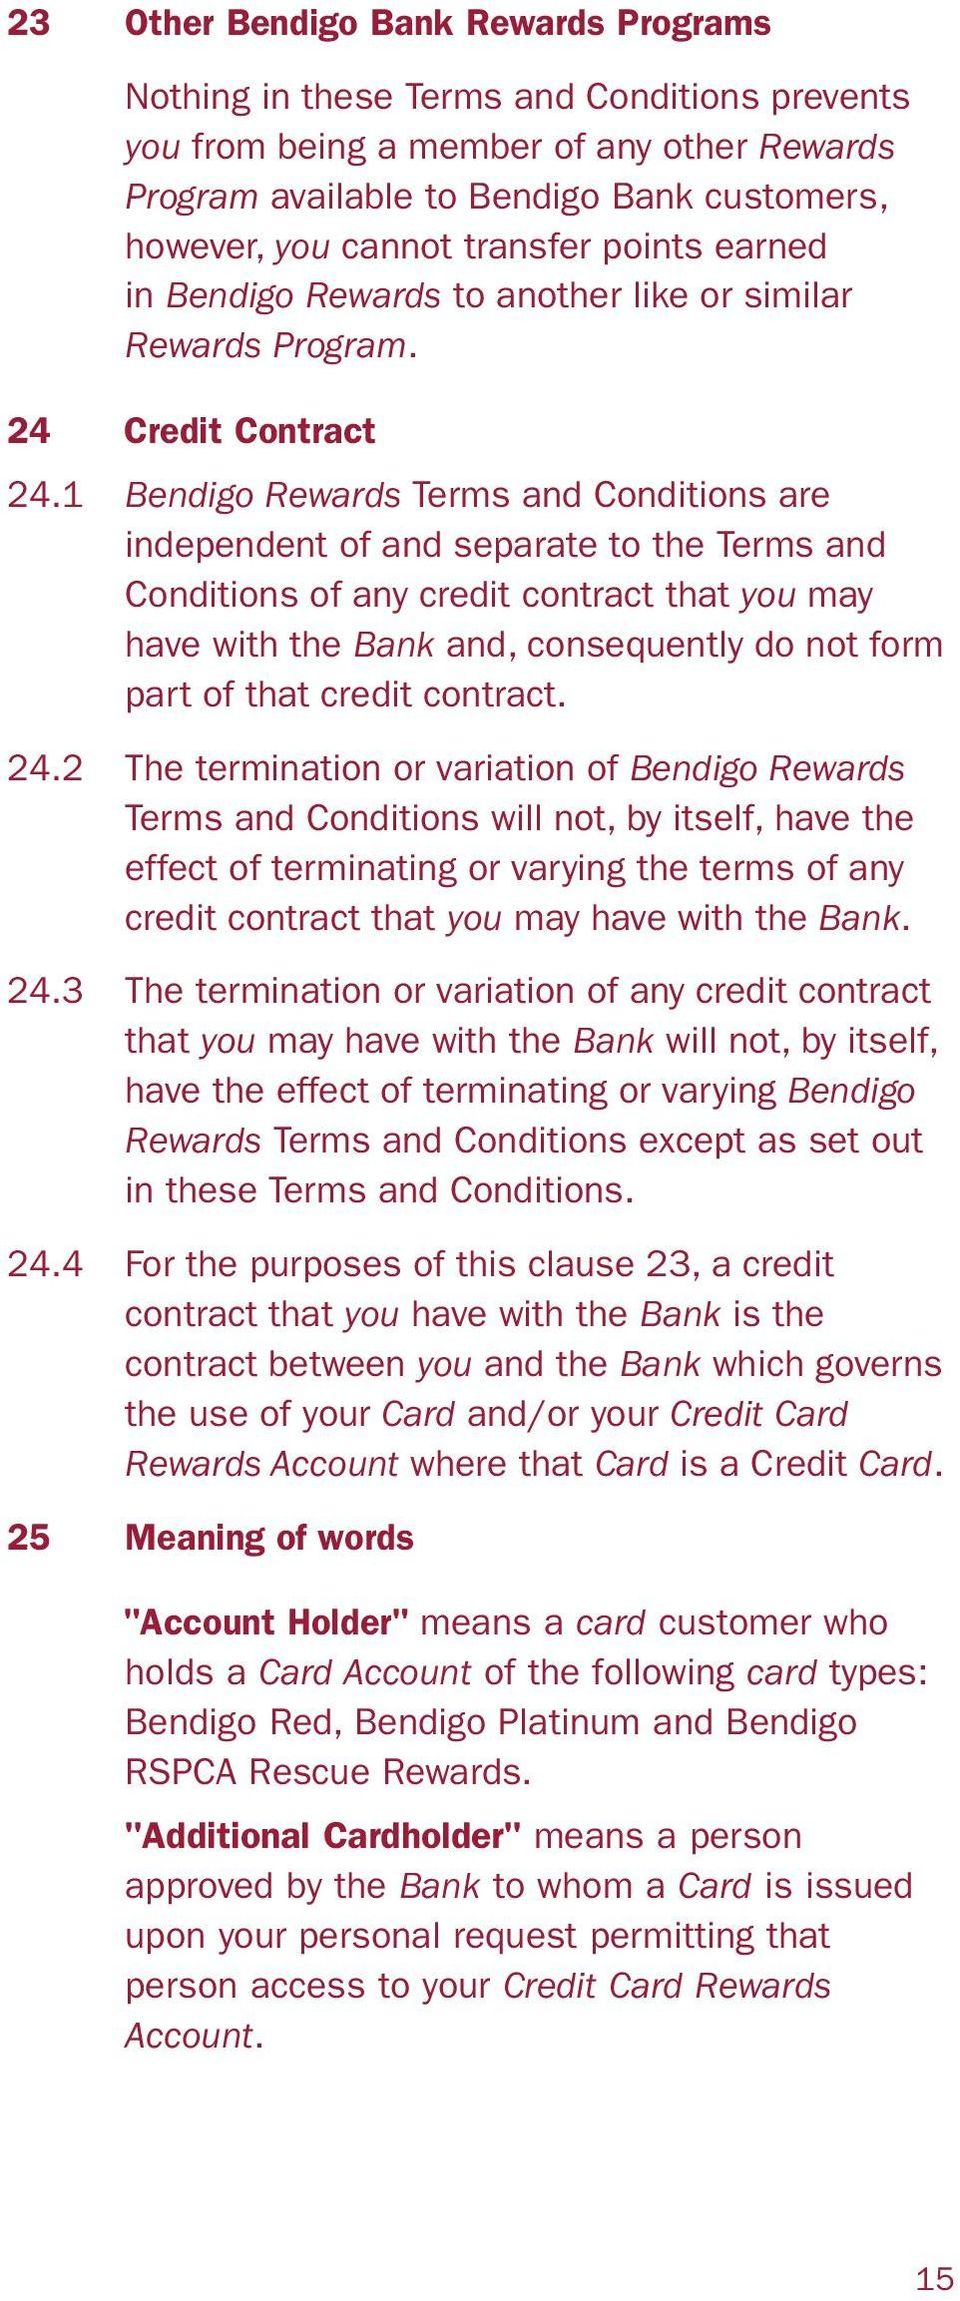 1 Bendigo Rewards Terms and Conditions are independent of and separate to the Terms and Conditions of any credit contract that you may have with the Bank and, consequently do not form part of that